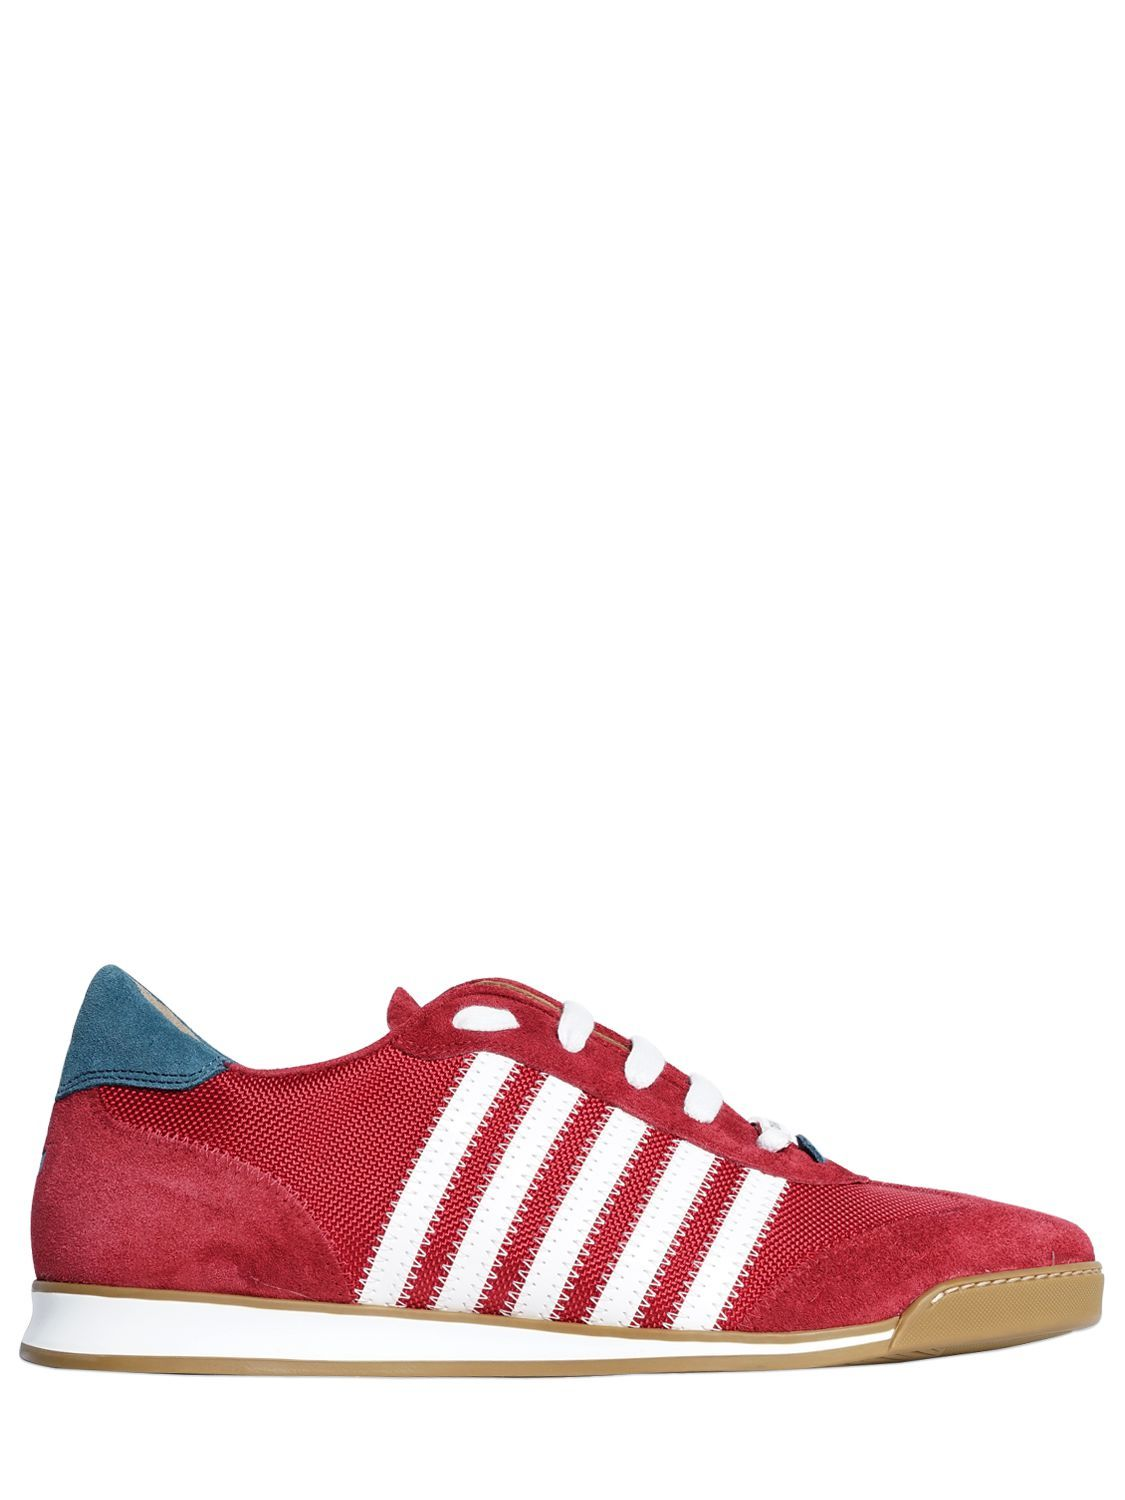 Dsquared2NEW RUNNER LEATHER & SUEDE SNEAKERS gMjQNa7XF